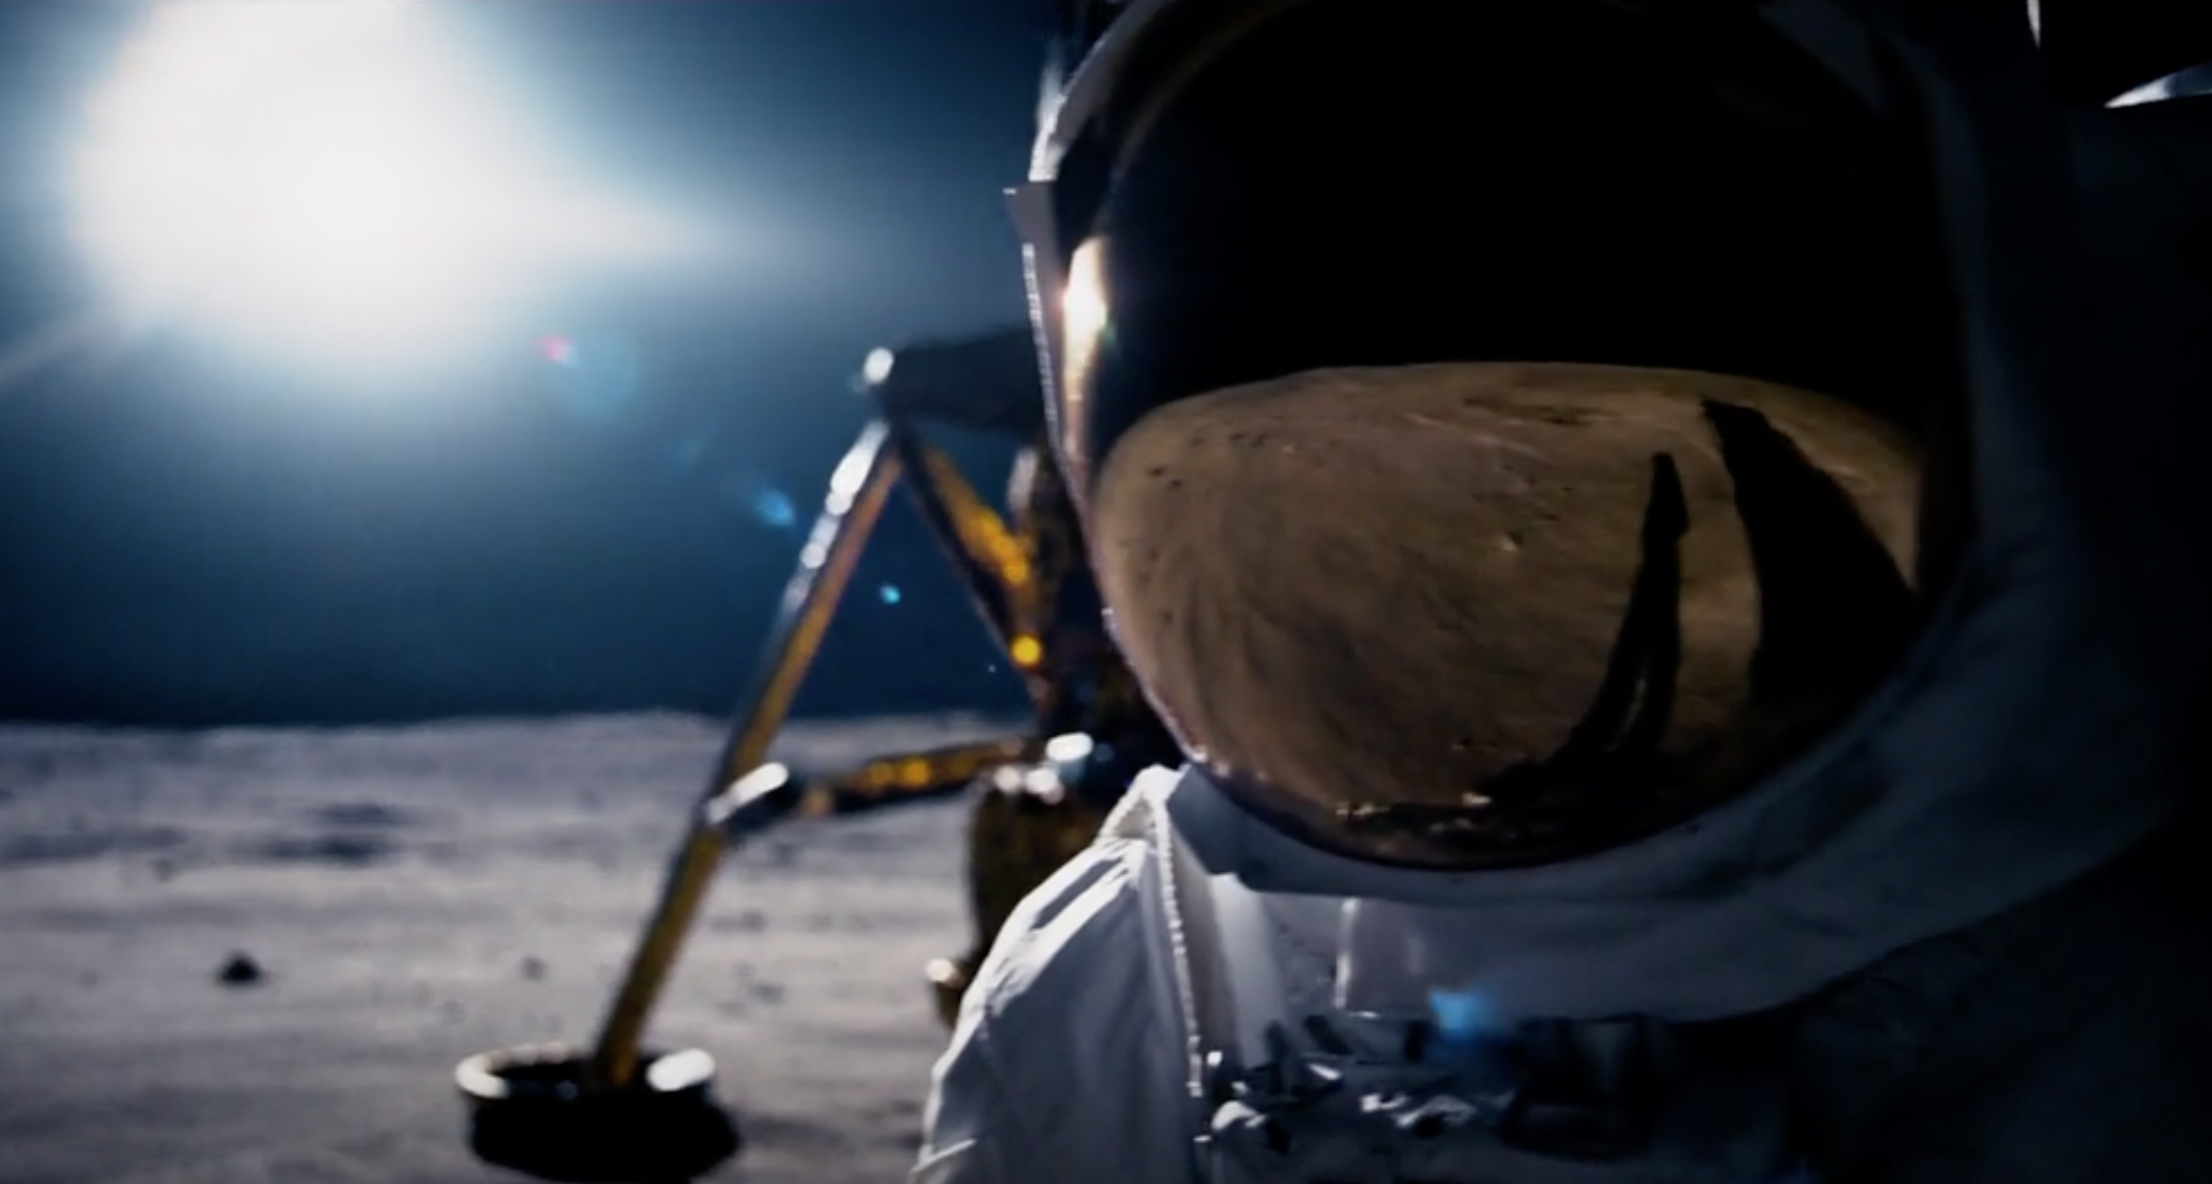 a-screenshot-from-the-first-man-trailer-shows-the-end-result-but-the-movie-looks-to-focus-on-the